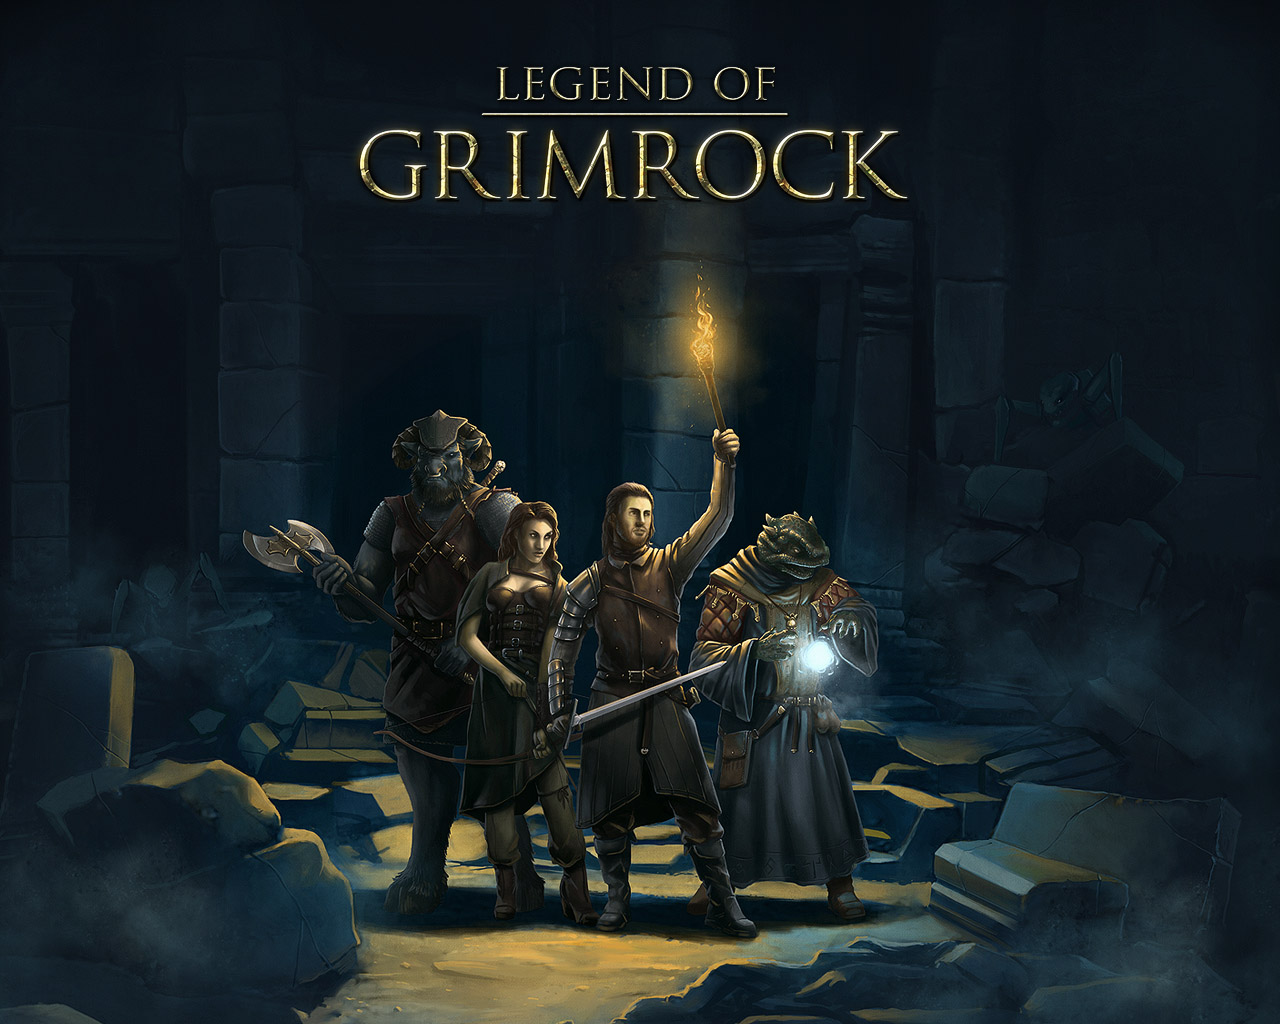 legend_of_grimrock_1280x1024_keyart_wallpaper